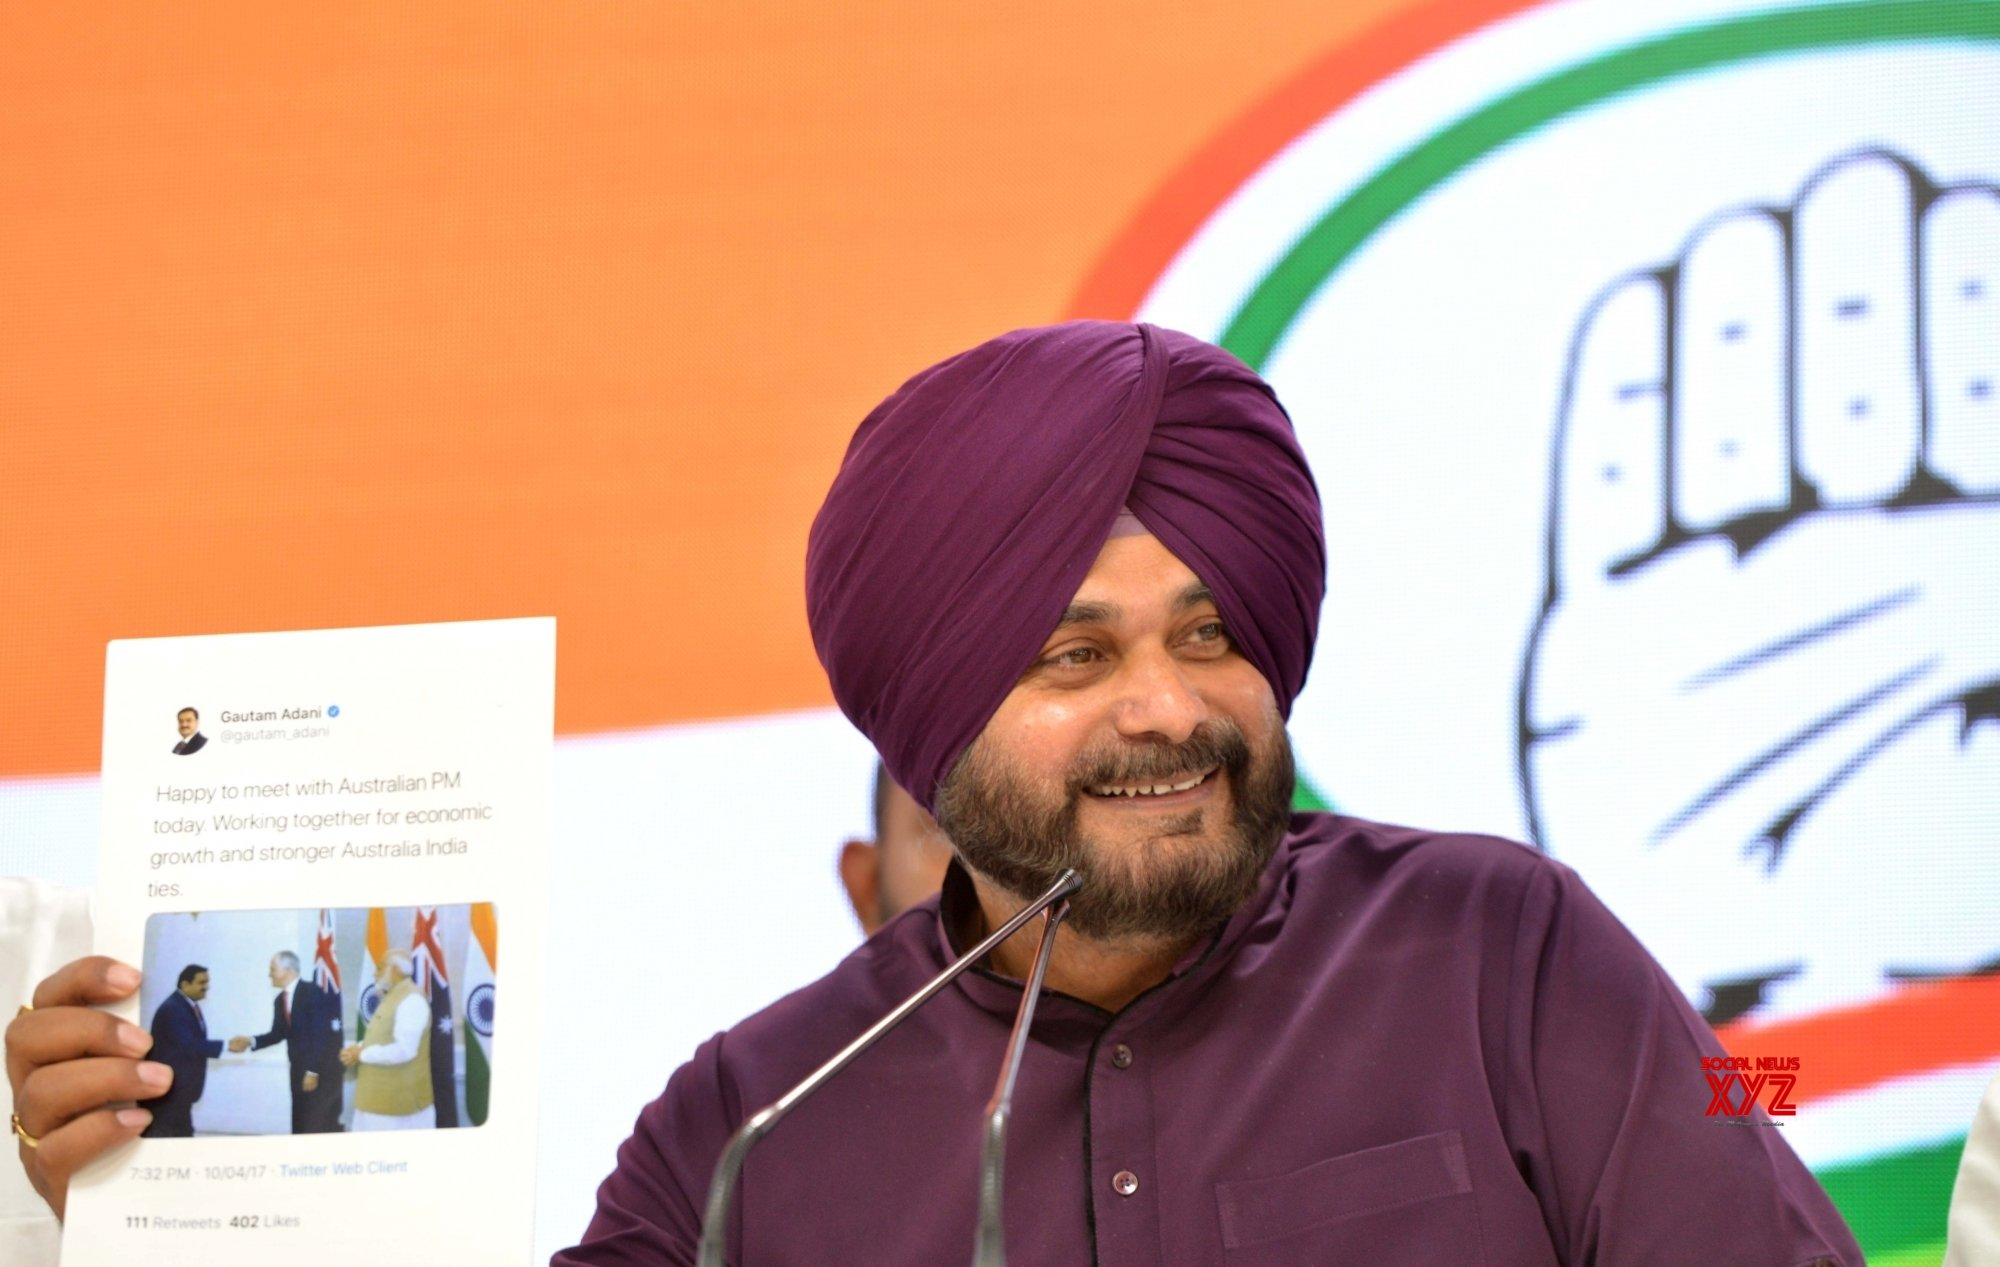 My wife never lies, says Sidhu; Punjab CM clarifies